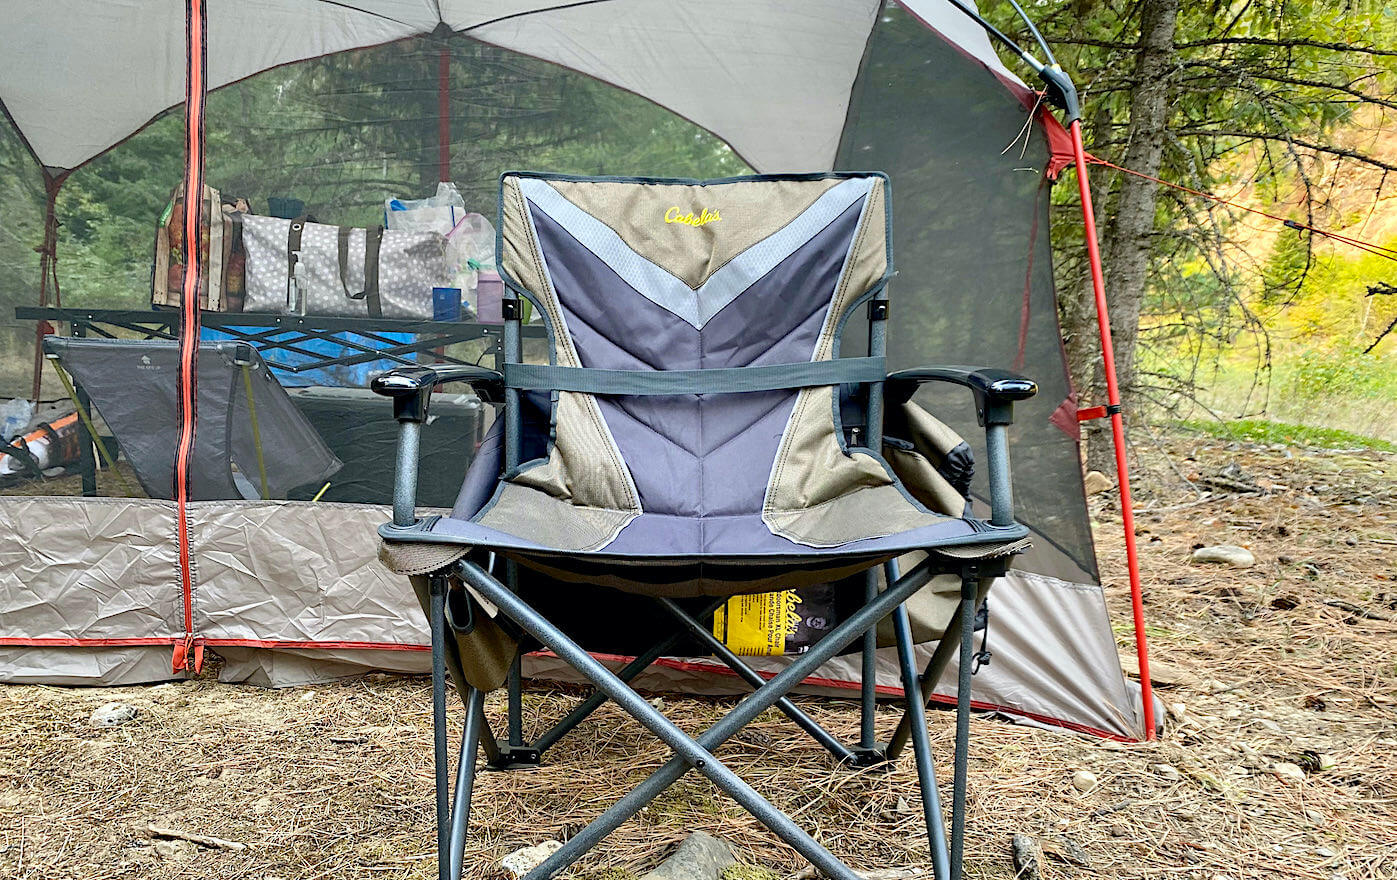 This photo shows the Cabela's Big Outdoorsman XL Fold-up Chair set up at a camping site.